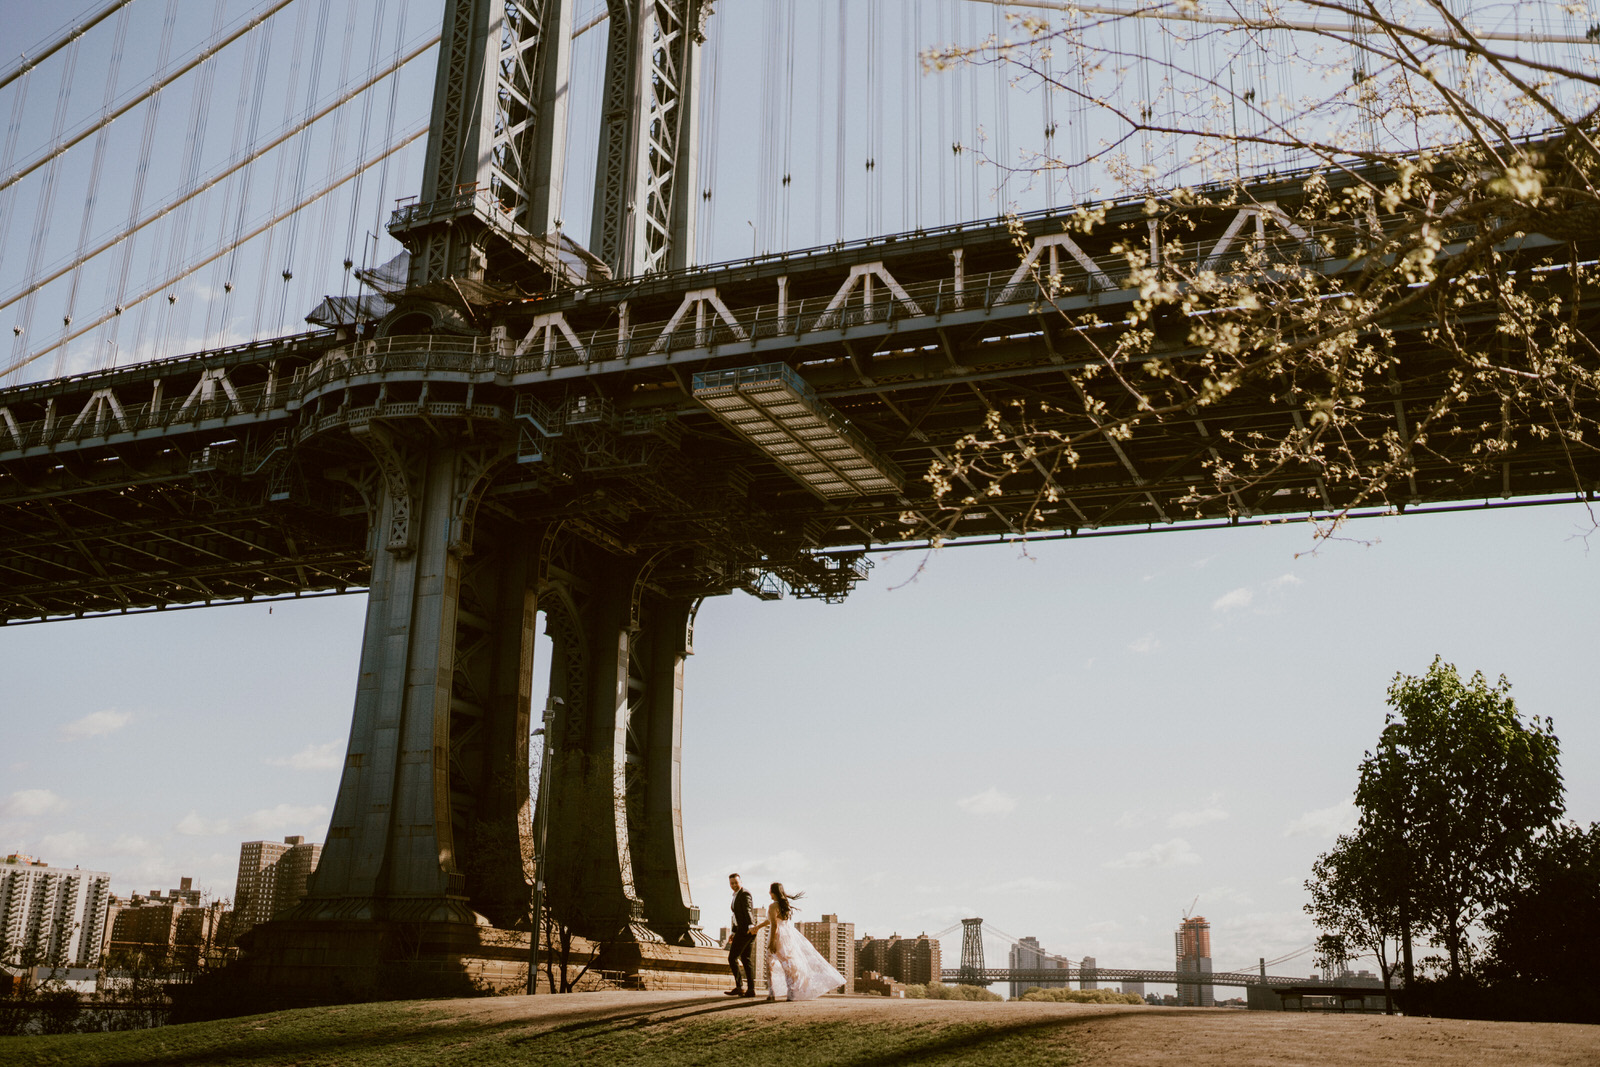 Dumbo Brooklyn New York Engagement Photos- Michelle Gonzalez Photography - Jessica and Alex-33.jpg